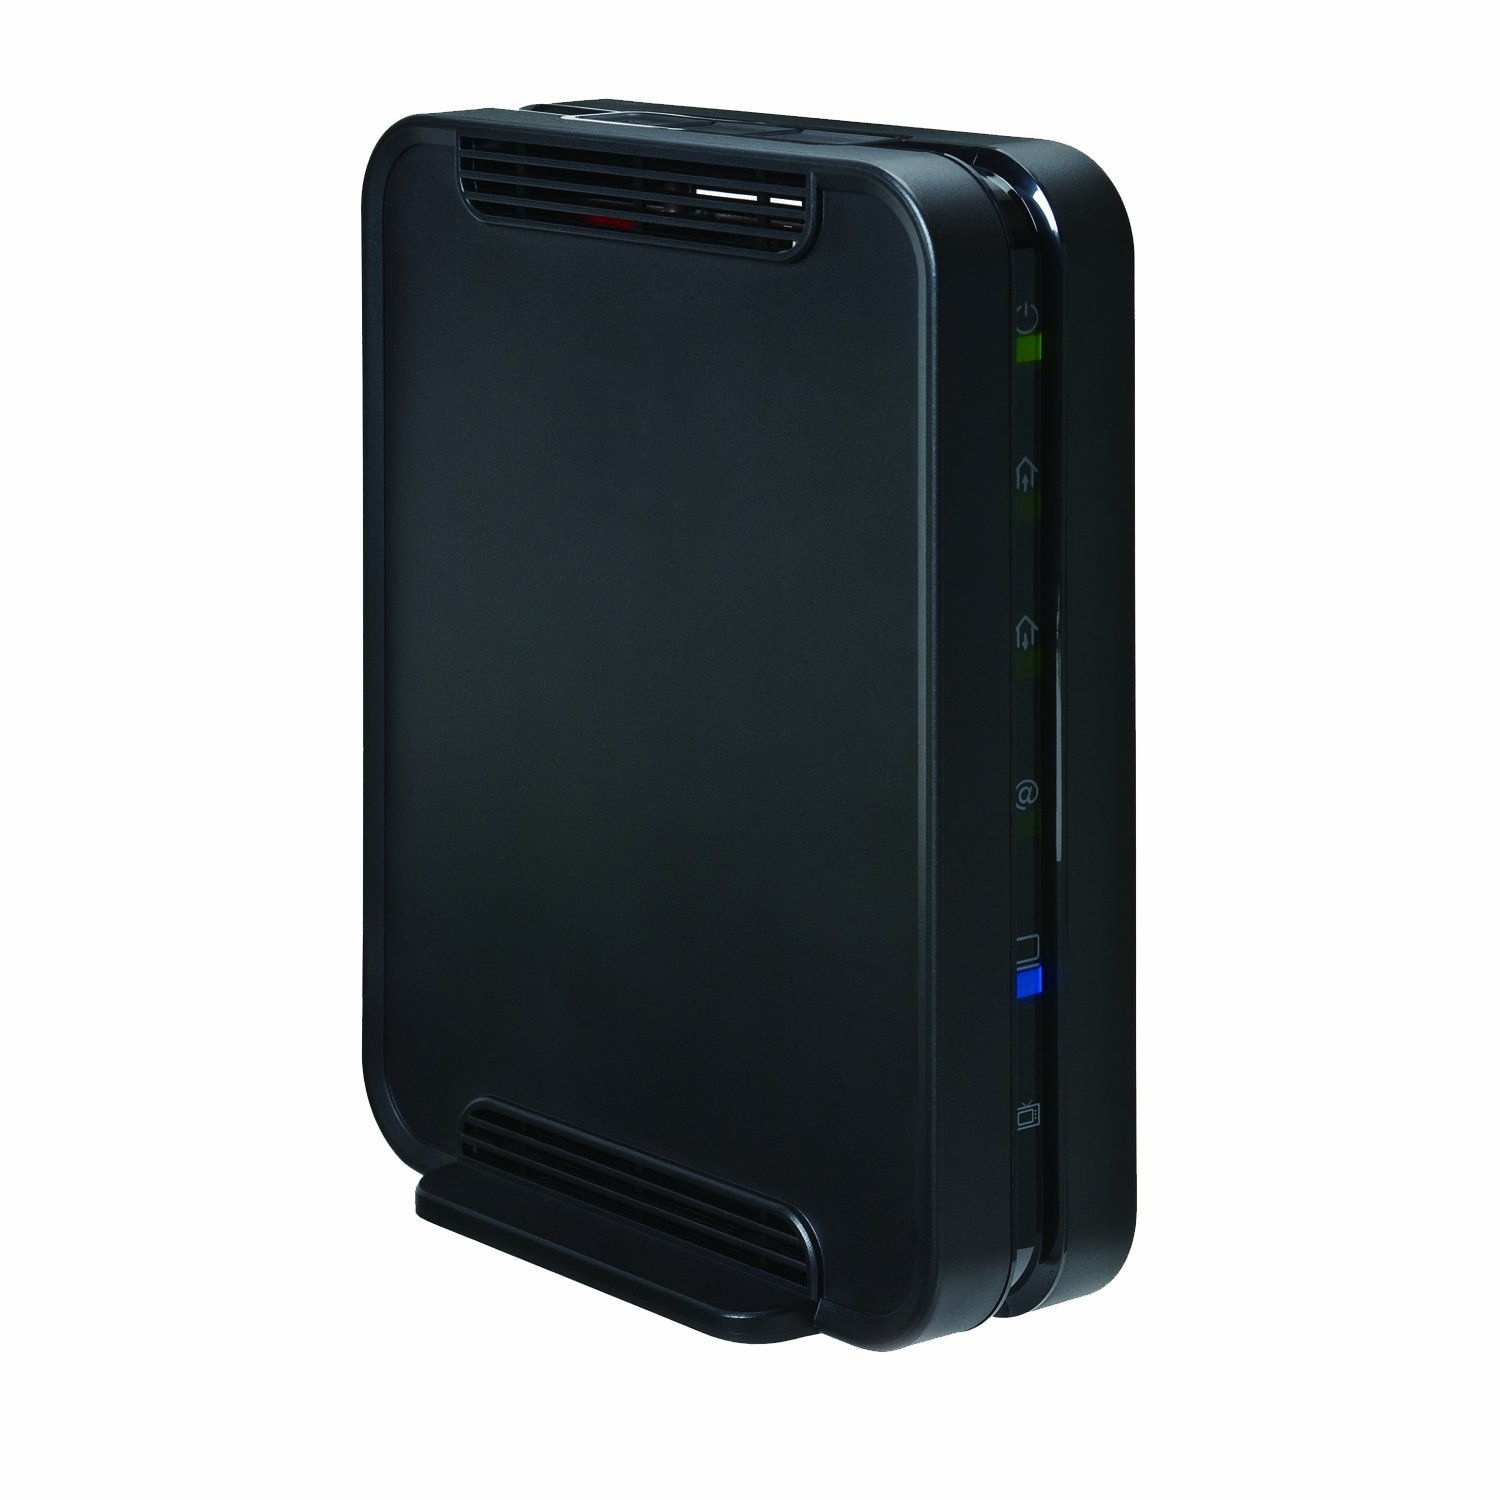 ZyXEL Cable Modem DOCSIS 3.0 Compatible with Time Warner Cox (CDA30360) by ZyXEL